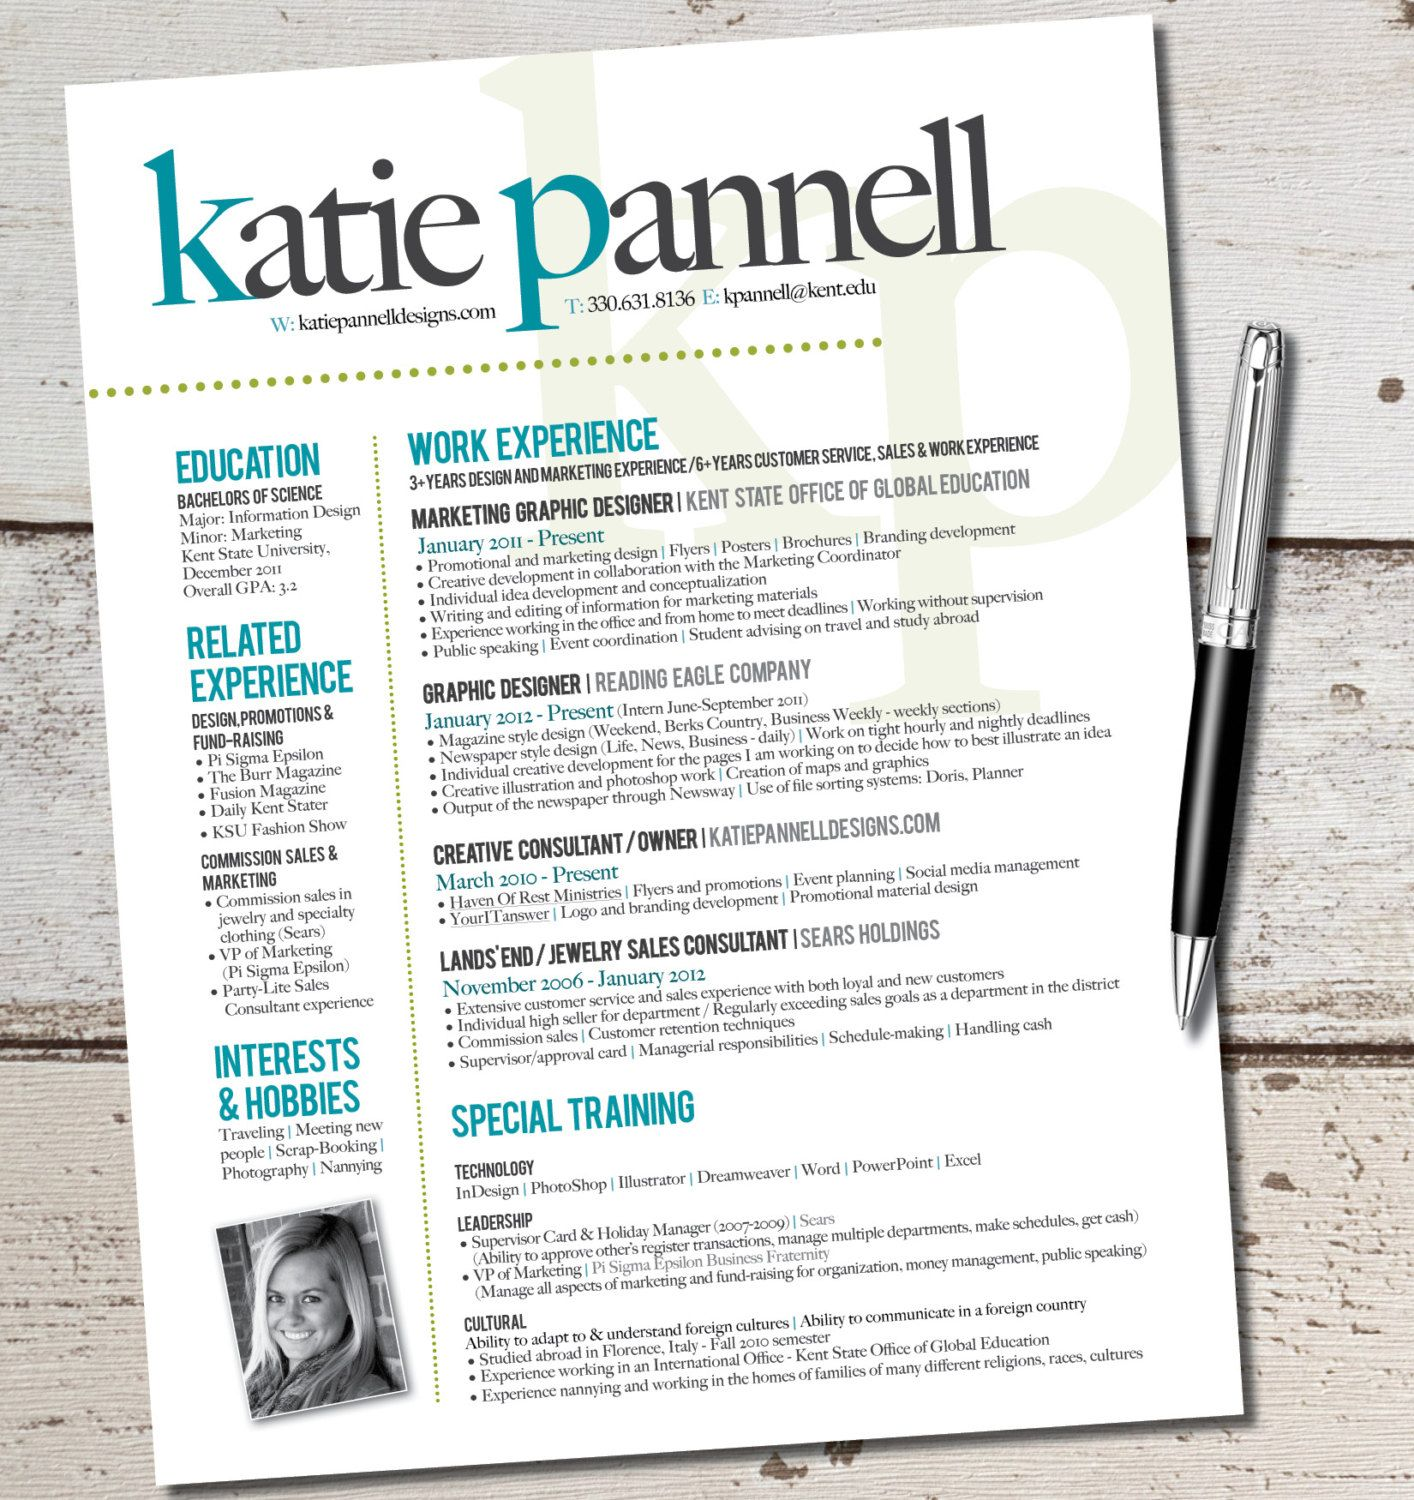 Graphic Design Student Resume The Katie Lyn Signature Resume Template Design By